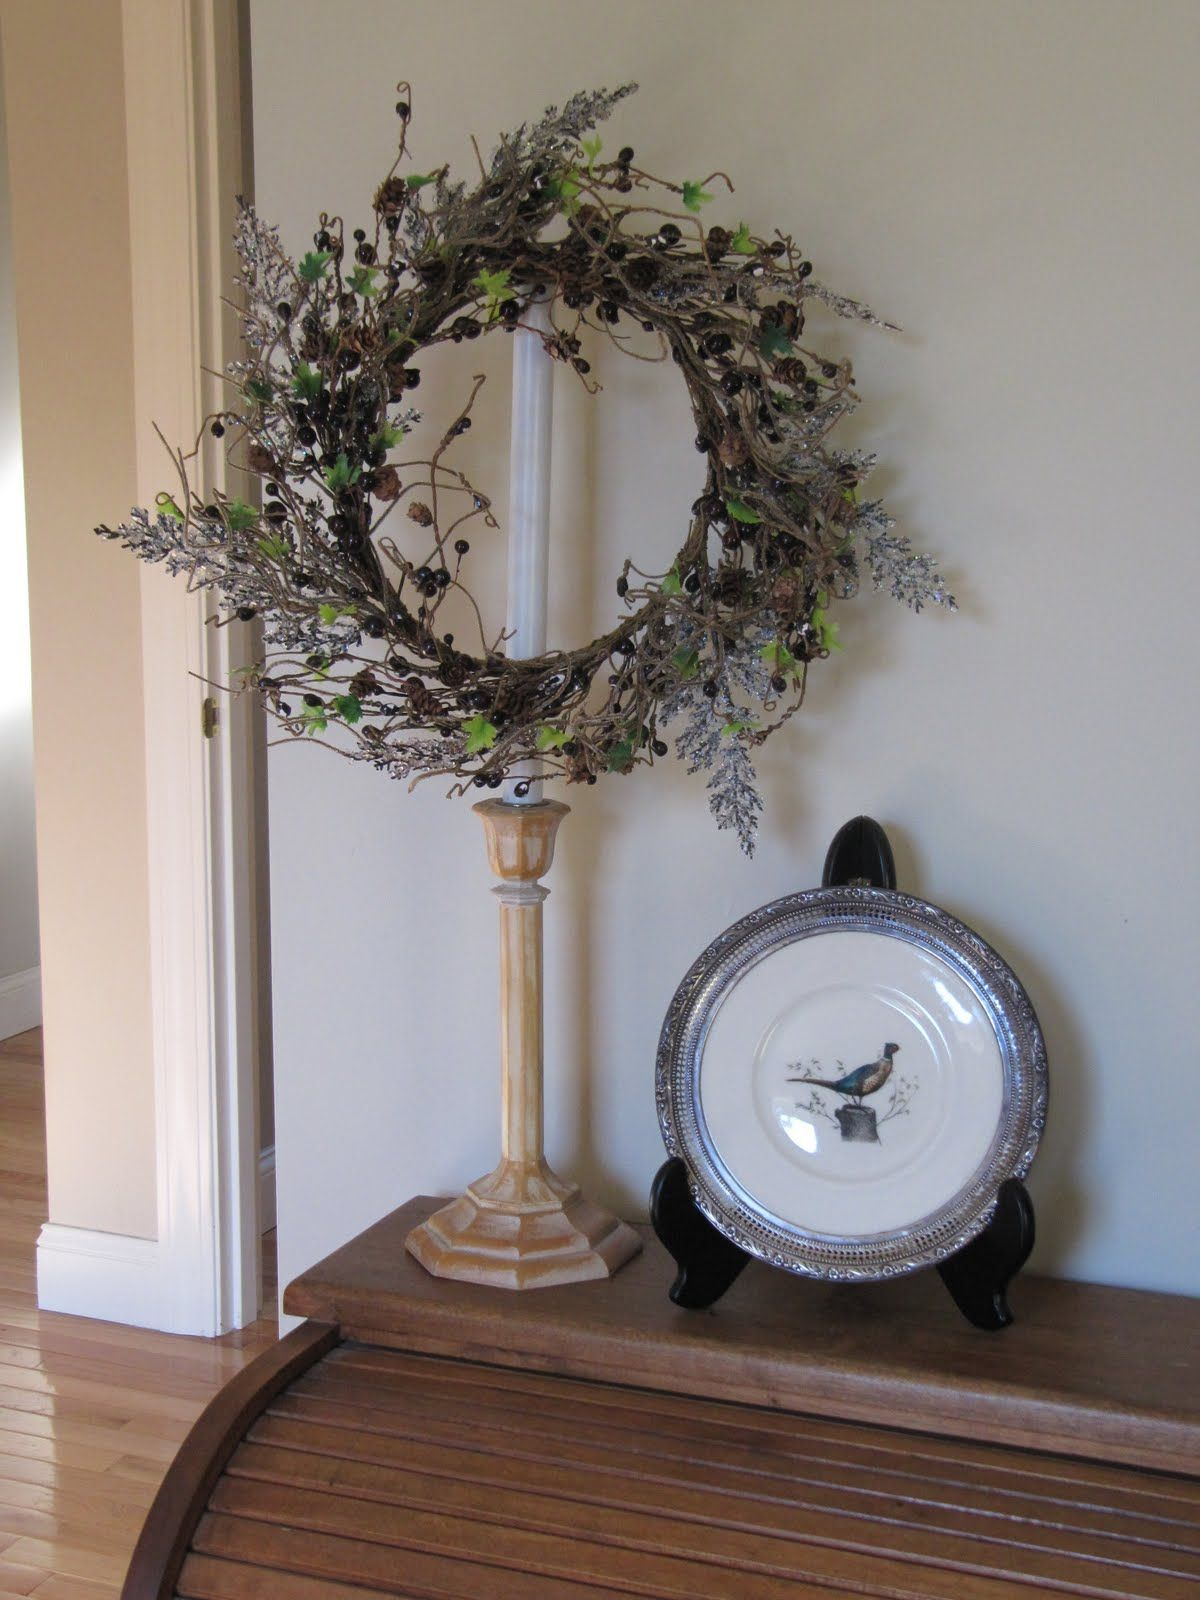 Candle Sticks And Lamps Candlesticks Wreath Stand Candle Wreaths